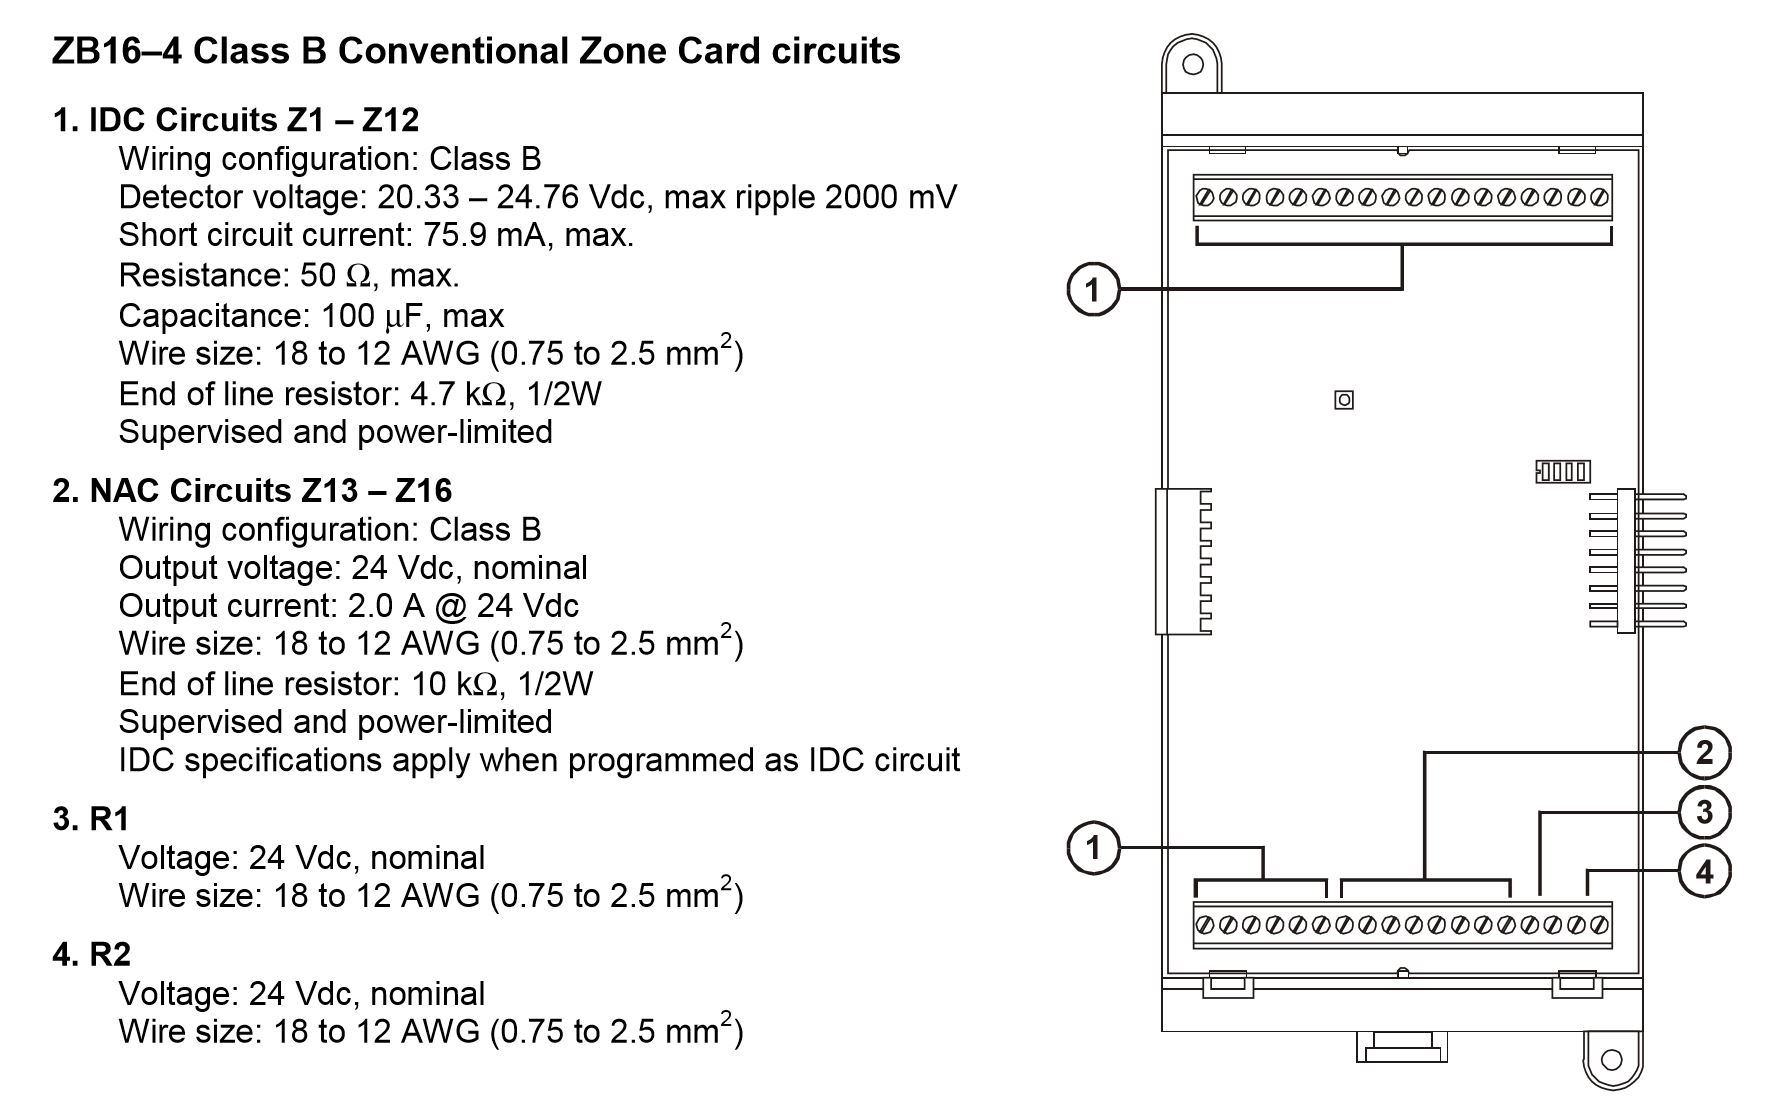 Edwards Signaling ZB16-4 | QUICKSTART CONV. ZONE CARD